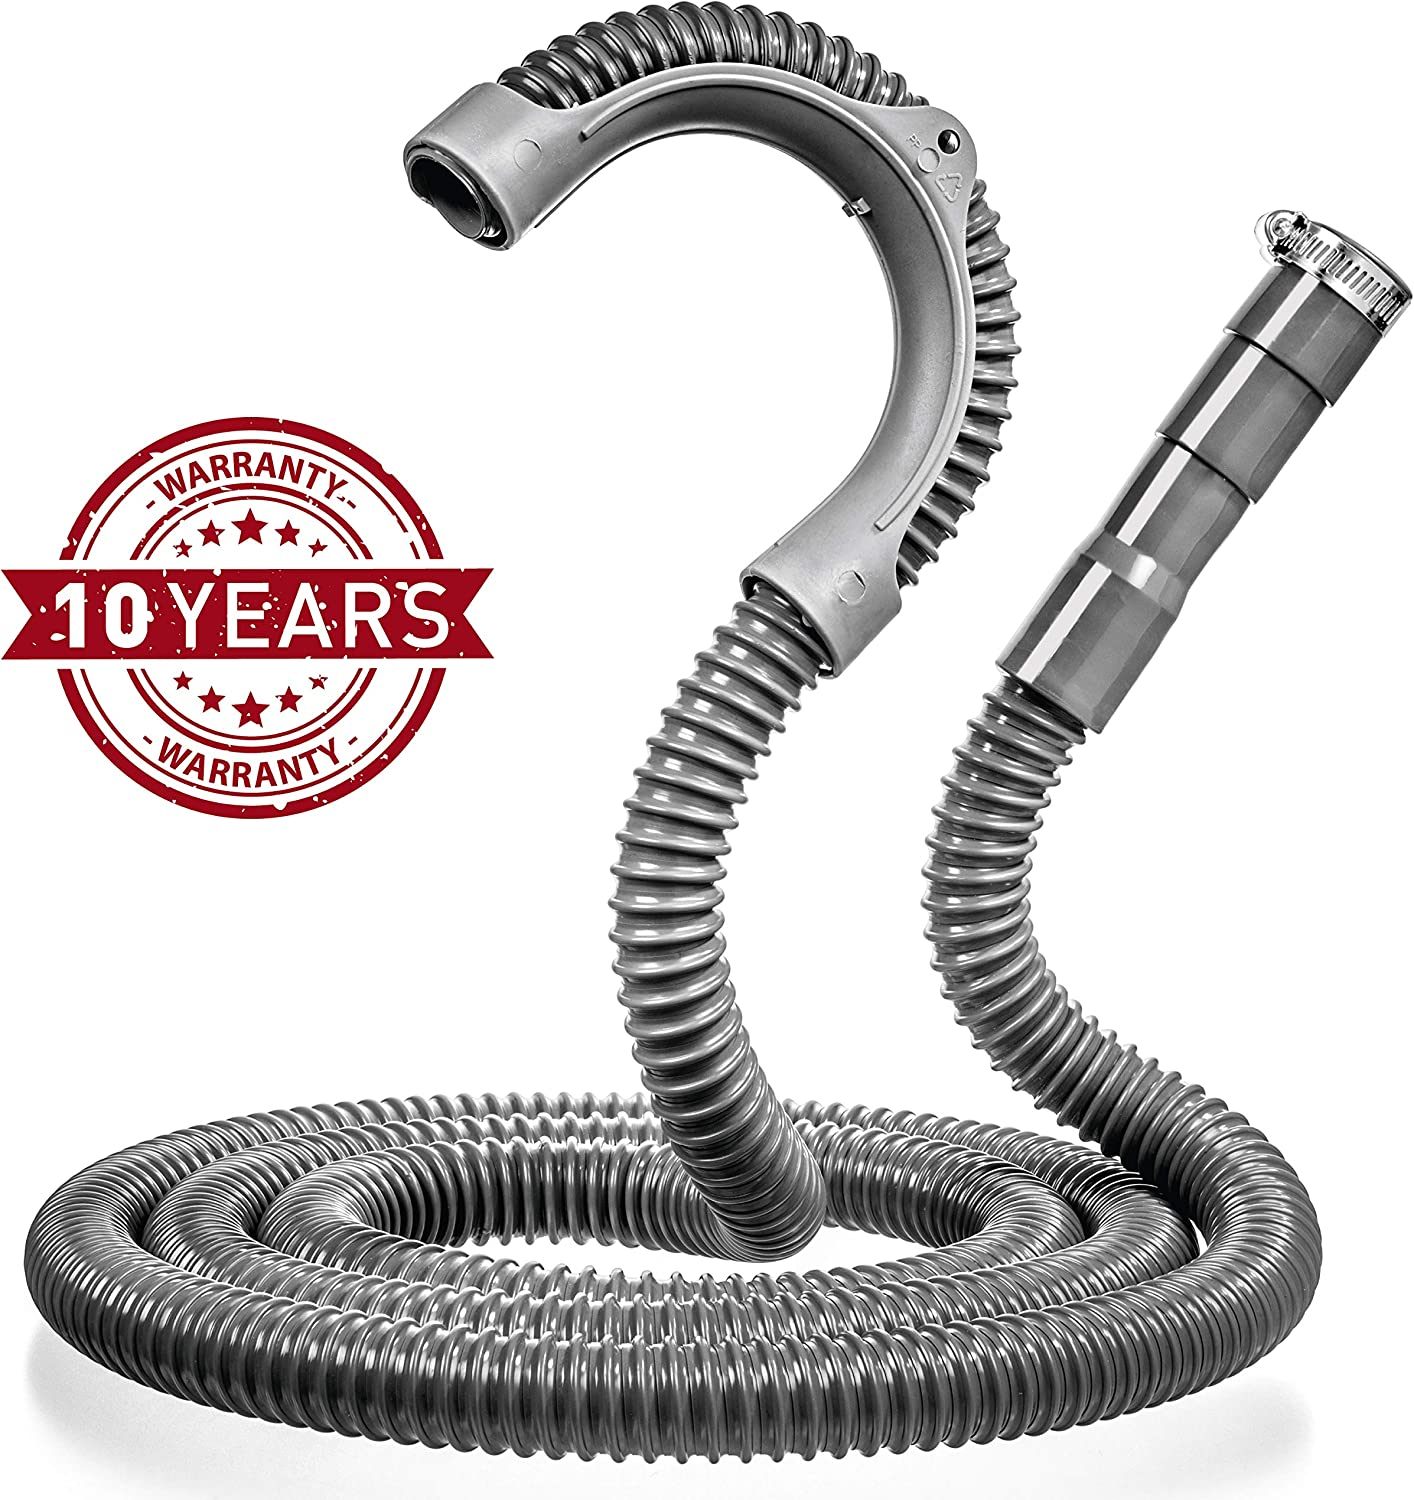 Universal Washing Machine Drain Hose - 10 Ft Drain Hose - Corrugated and Flexible Washer Drain Hose - Quick and Easy Installation Washer Hose Drain Replacement - Reinforced Washer Hoses with Clamp